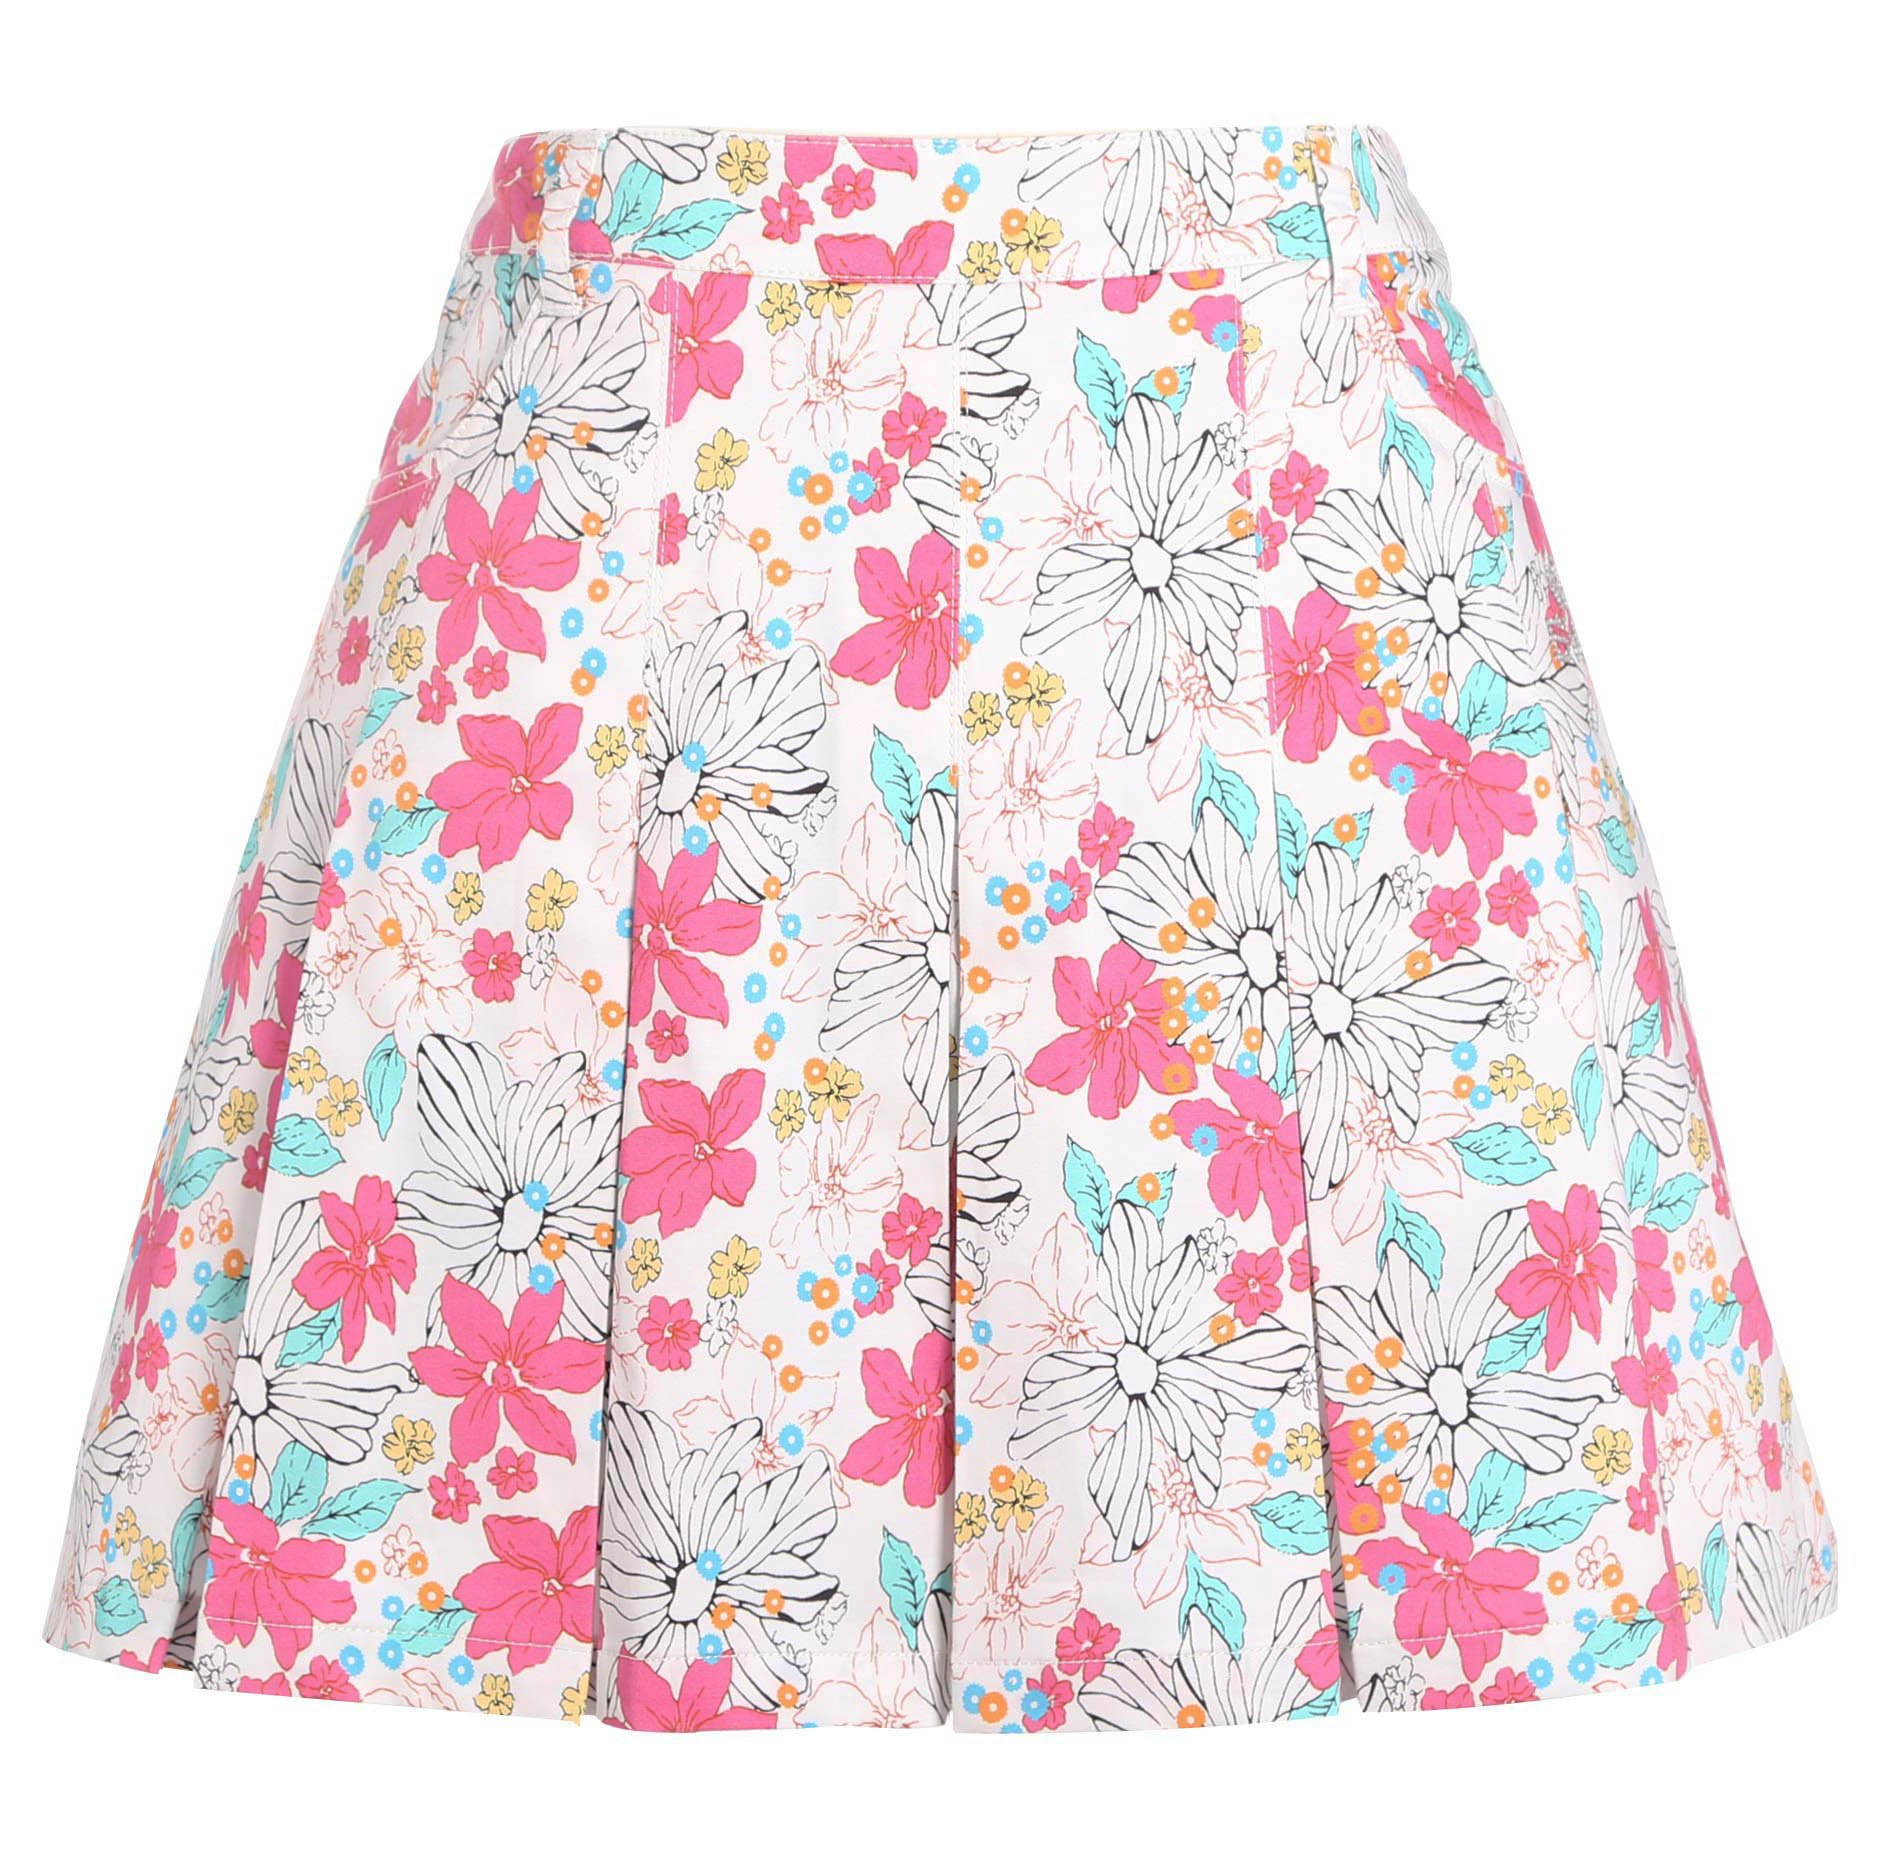 SVG Women's Floral Print A-line Golf Skorts Pleated Cotton Casual Skirt Pink XS